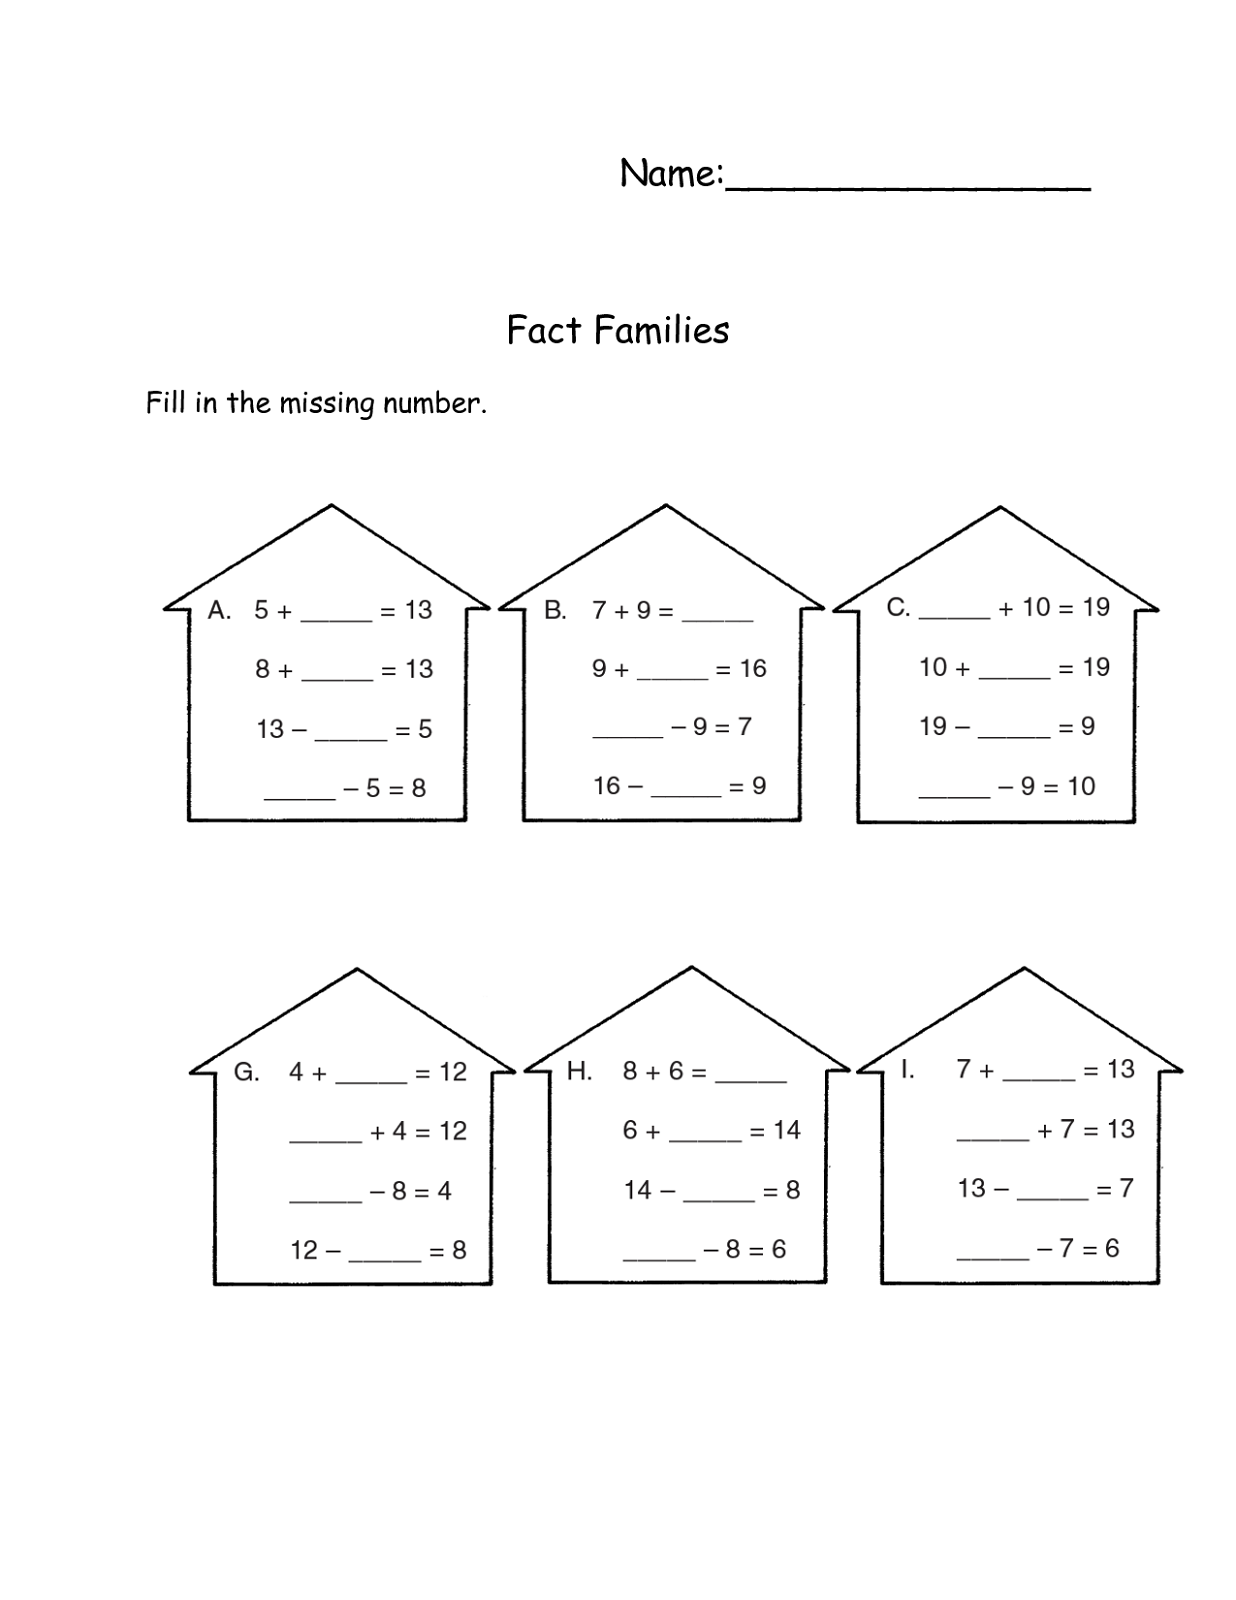 Fact Family Worksheets Printable With Images